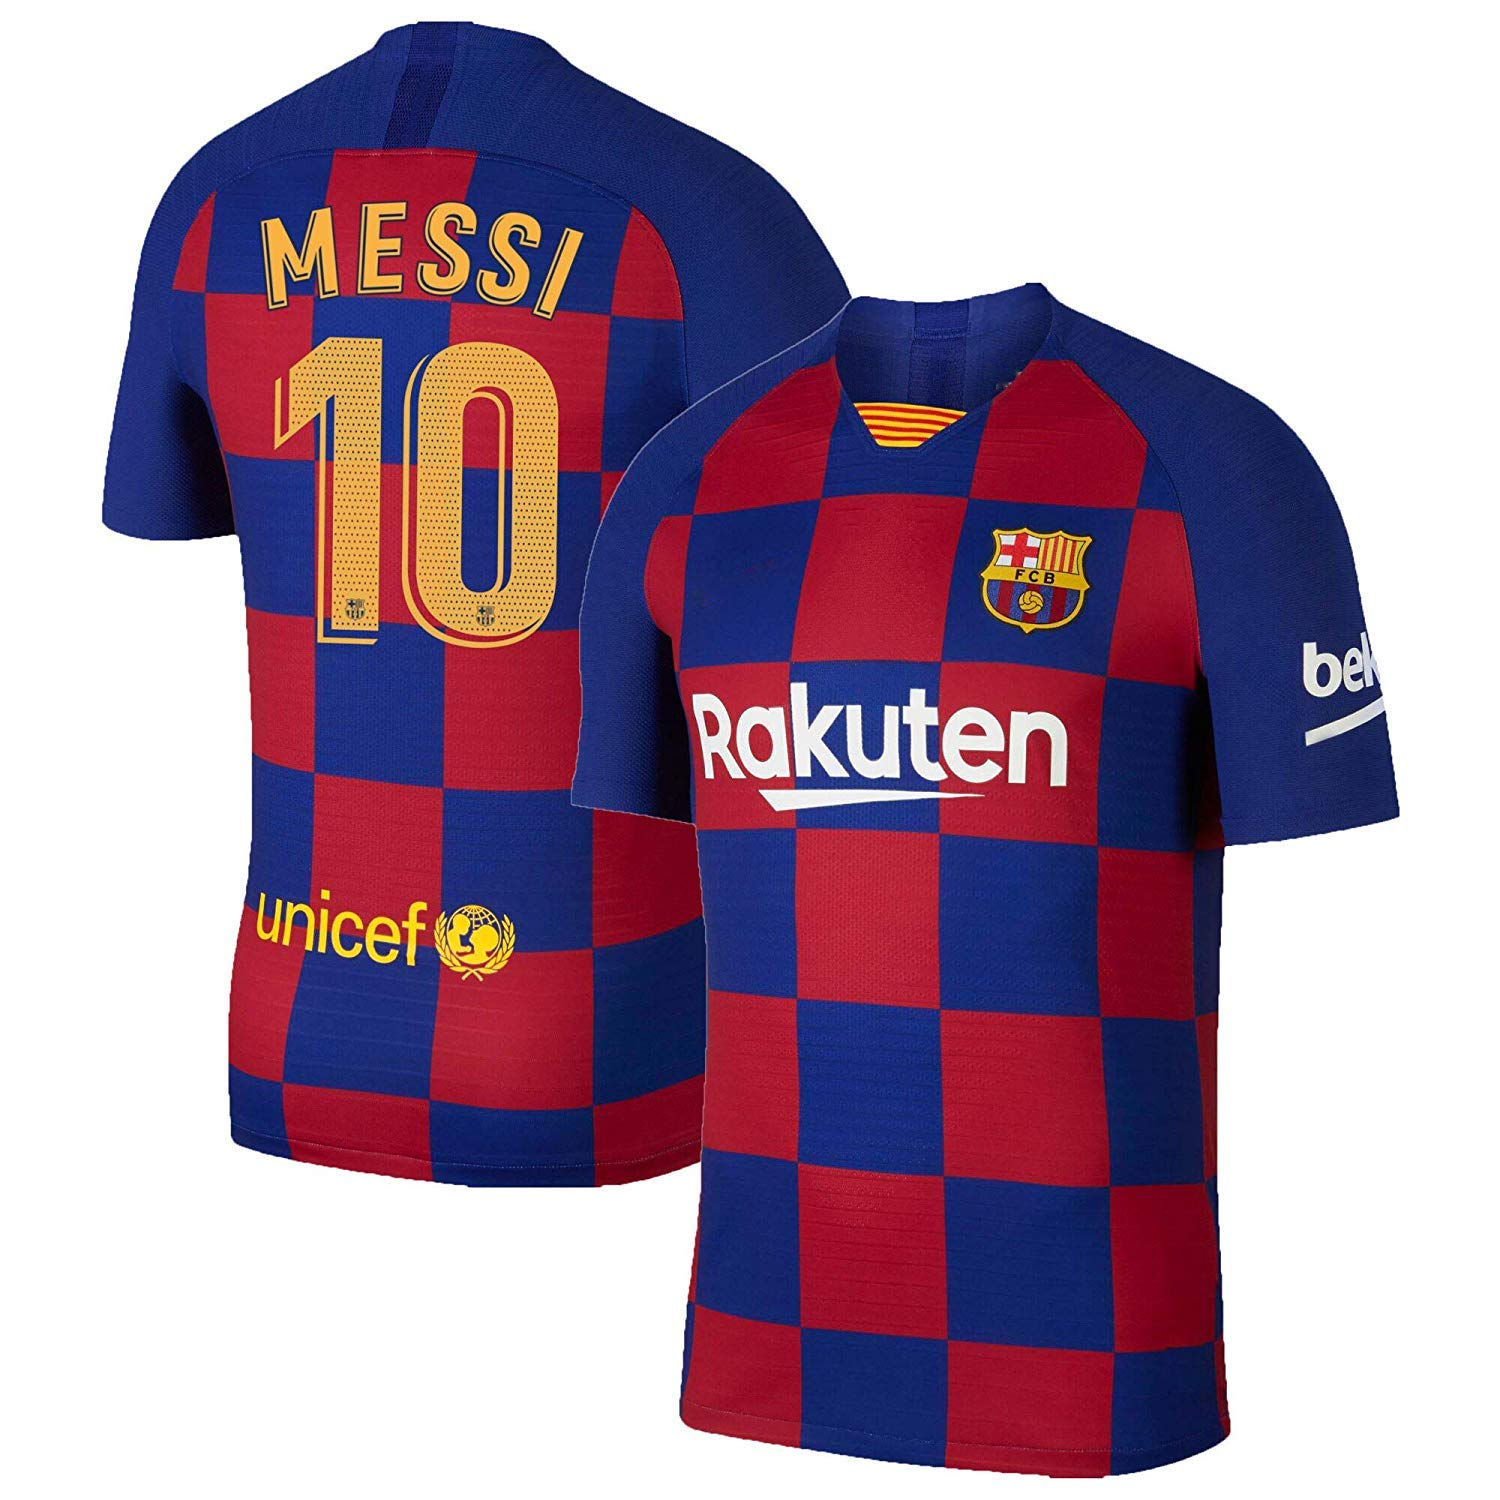 new styles 7b3dd 8b3cd Buy aaDDa Sports Barcelona Messi Printed Jersey 2019-2020 ...